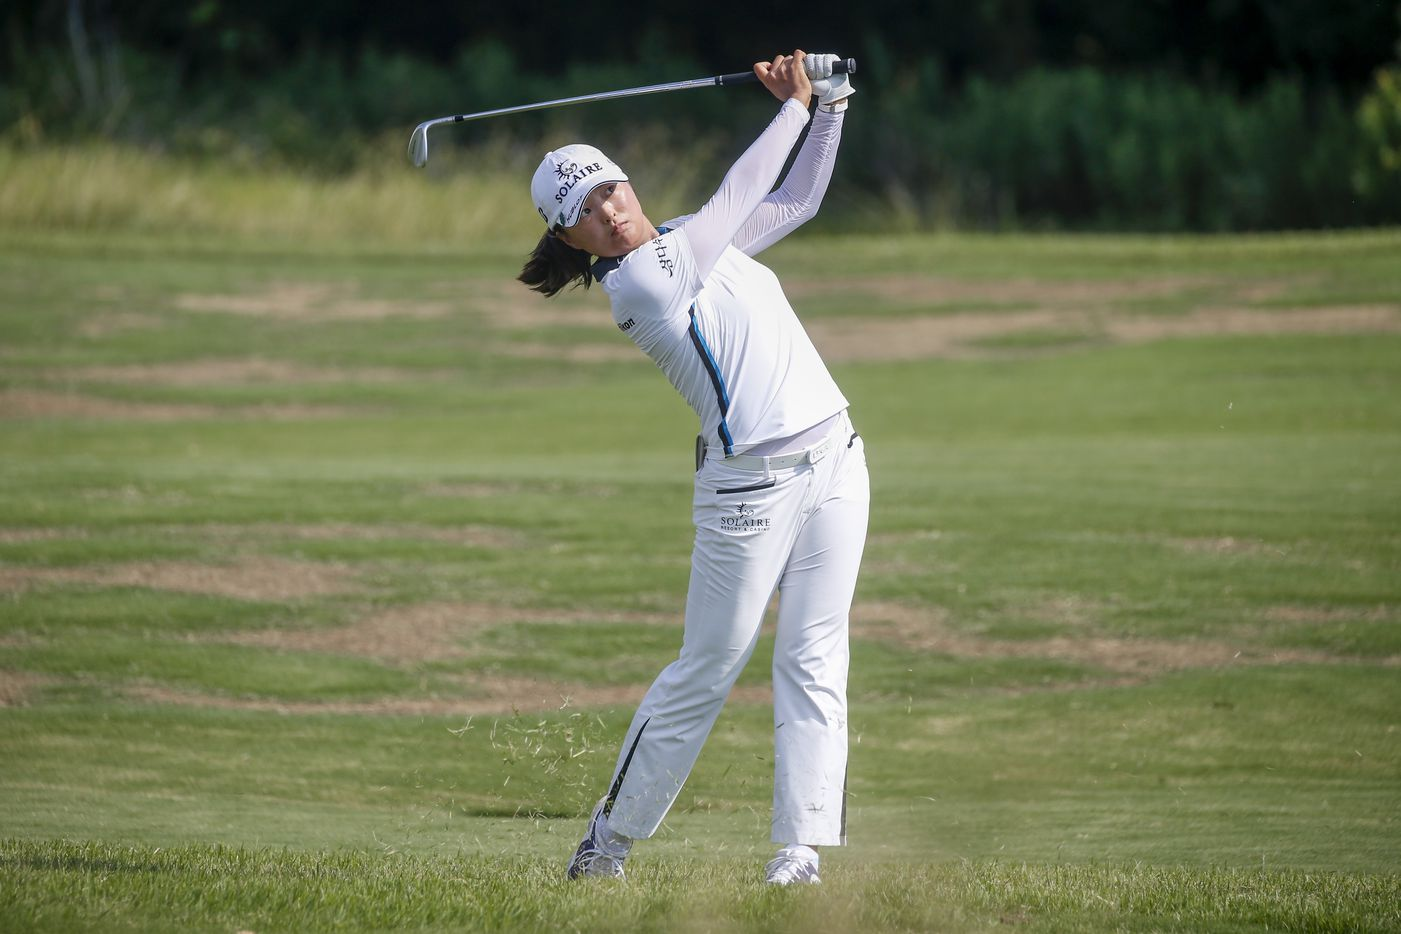 Professional golfer Jin Young Ko plays a ball off the No. 12 fairway during the final round of the LPGA VOA Classic on Sunday, July 4, 2021, in The Colony, Texas. Ko won the tournament, finishing at 16 under par. (Elias Valverde II/The Dallas Morning News)